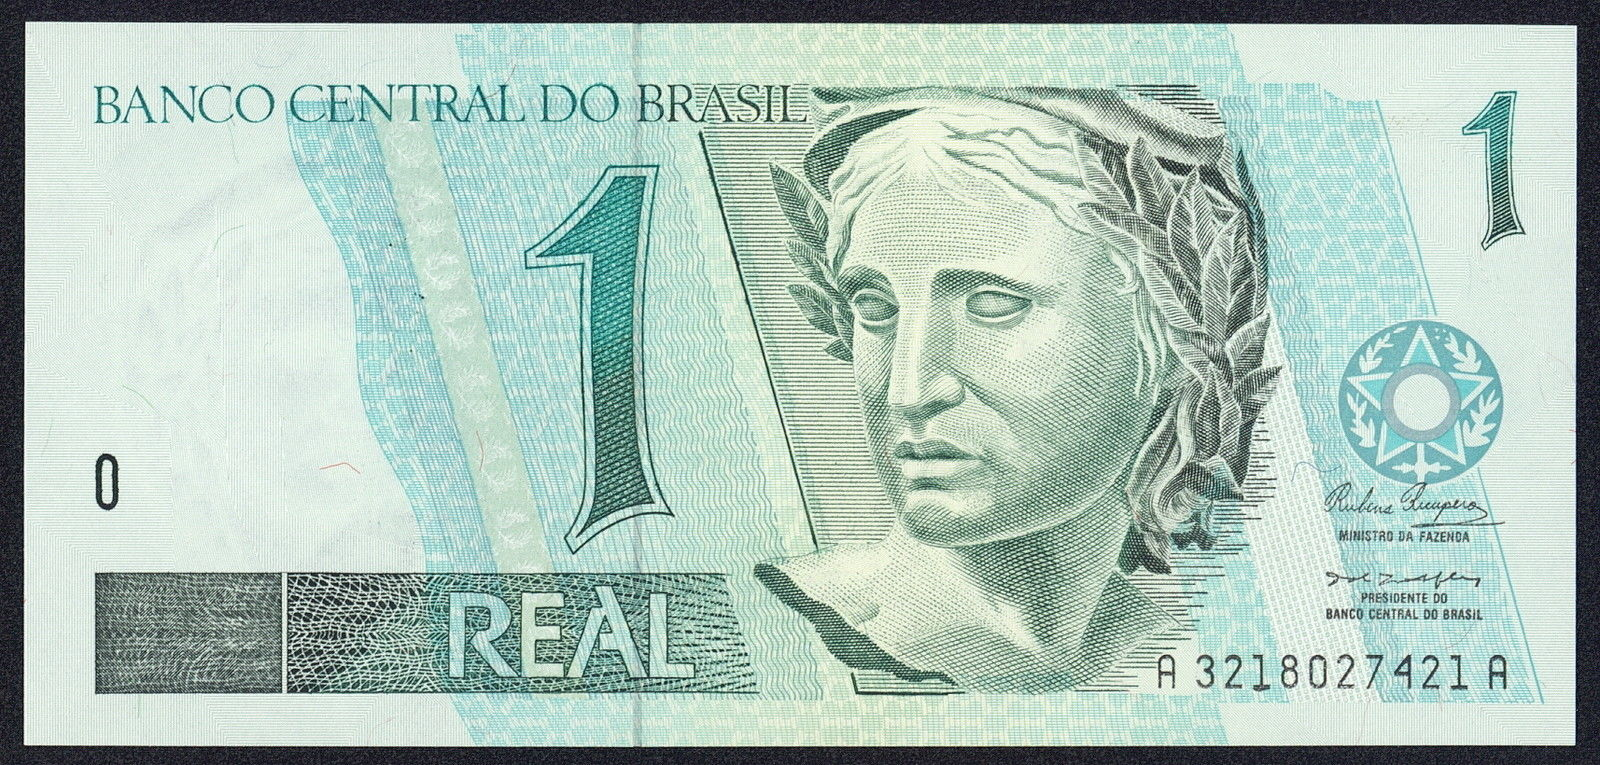 Brazil 1 Real banknote 1994 World Banknotes & Coins Pictures   Old Money, Foreign Currency Notes ...